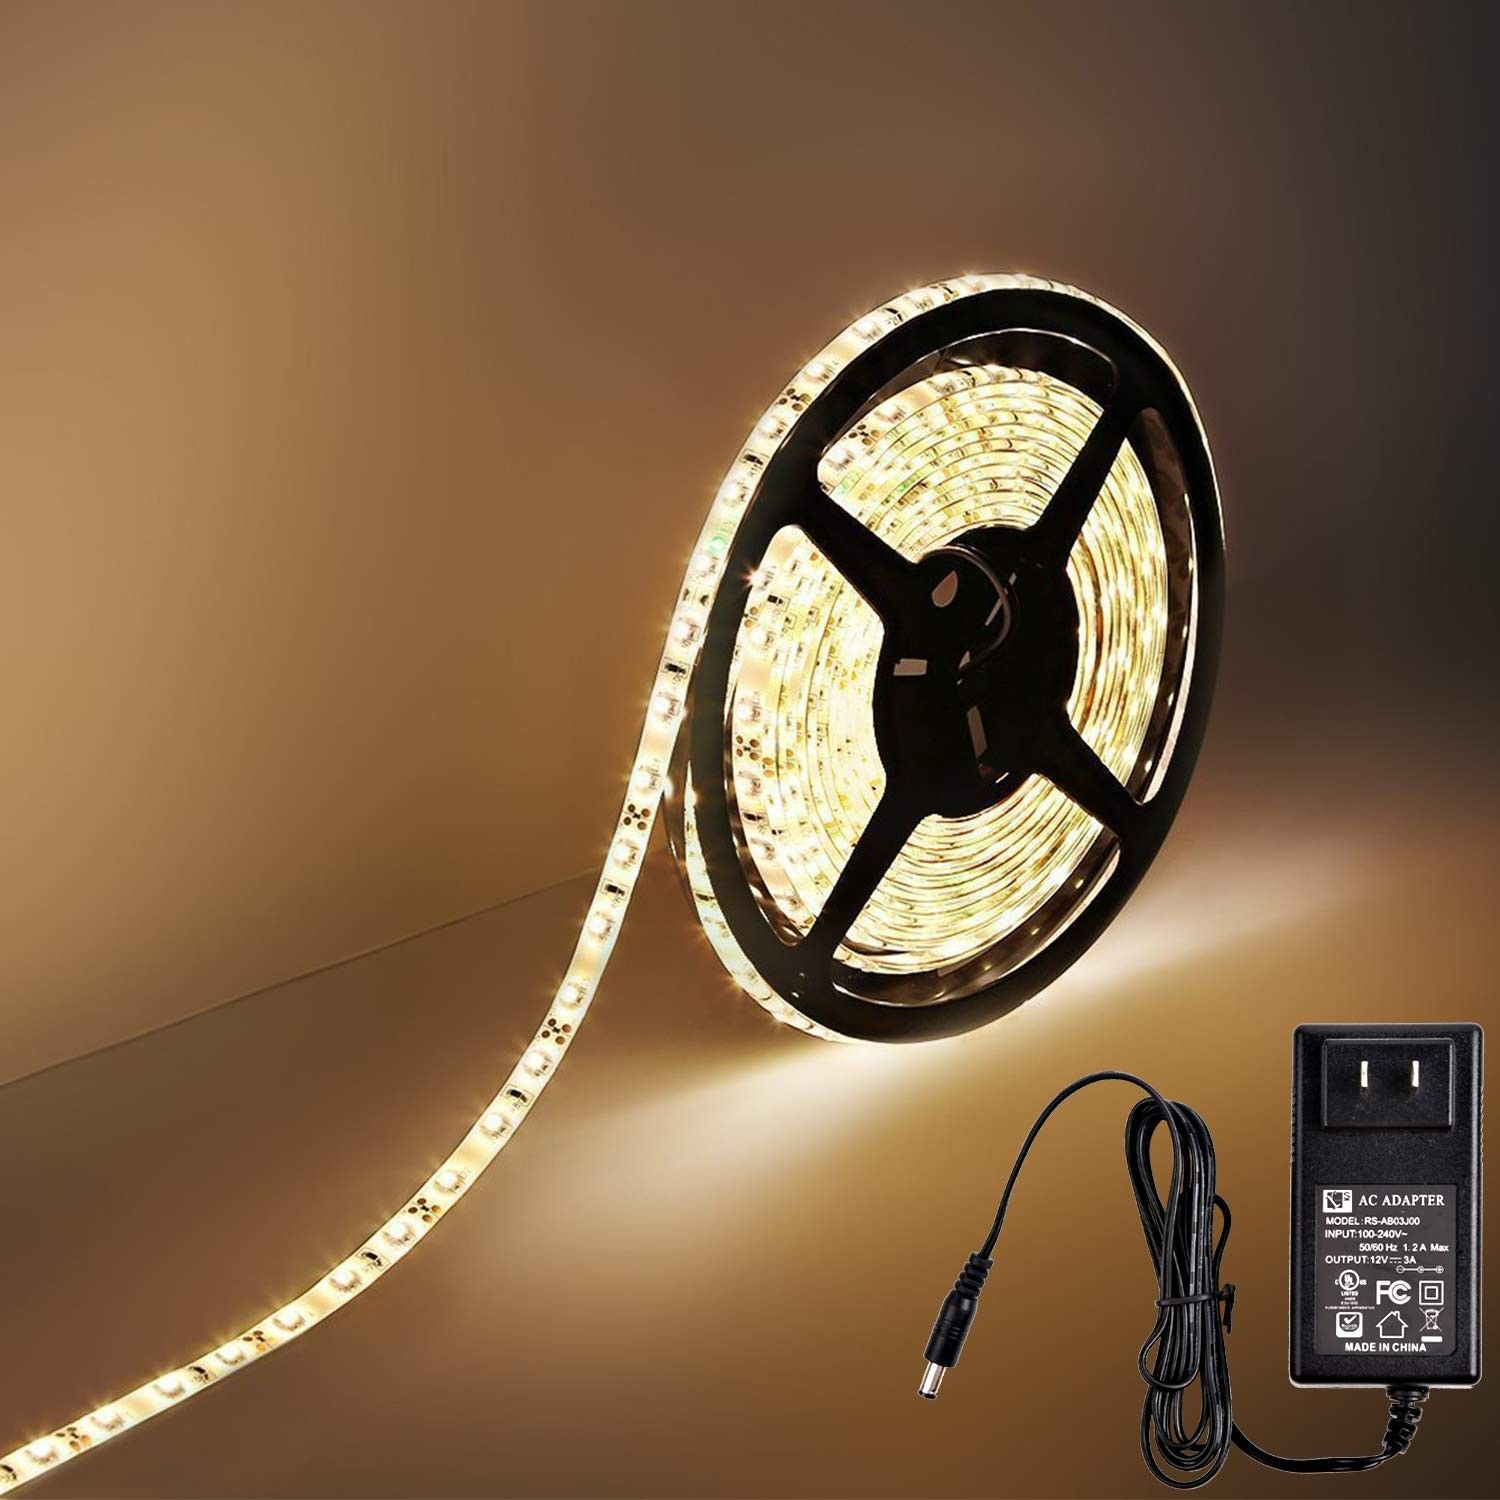 25ft Brilliant Amber Led Rope Light Kit For 12v System Christmas Lighting Outdoor Rope Lighting By Orange Tree Led Rope Lights Outdoor Rope Lights Rope Light